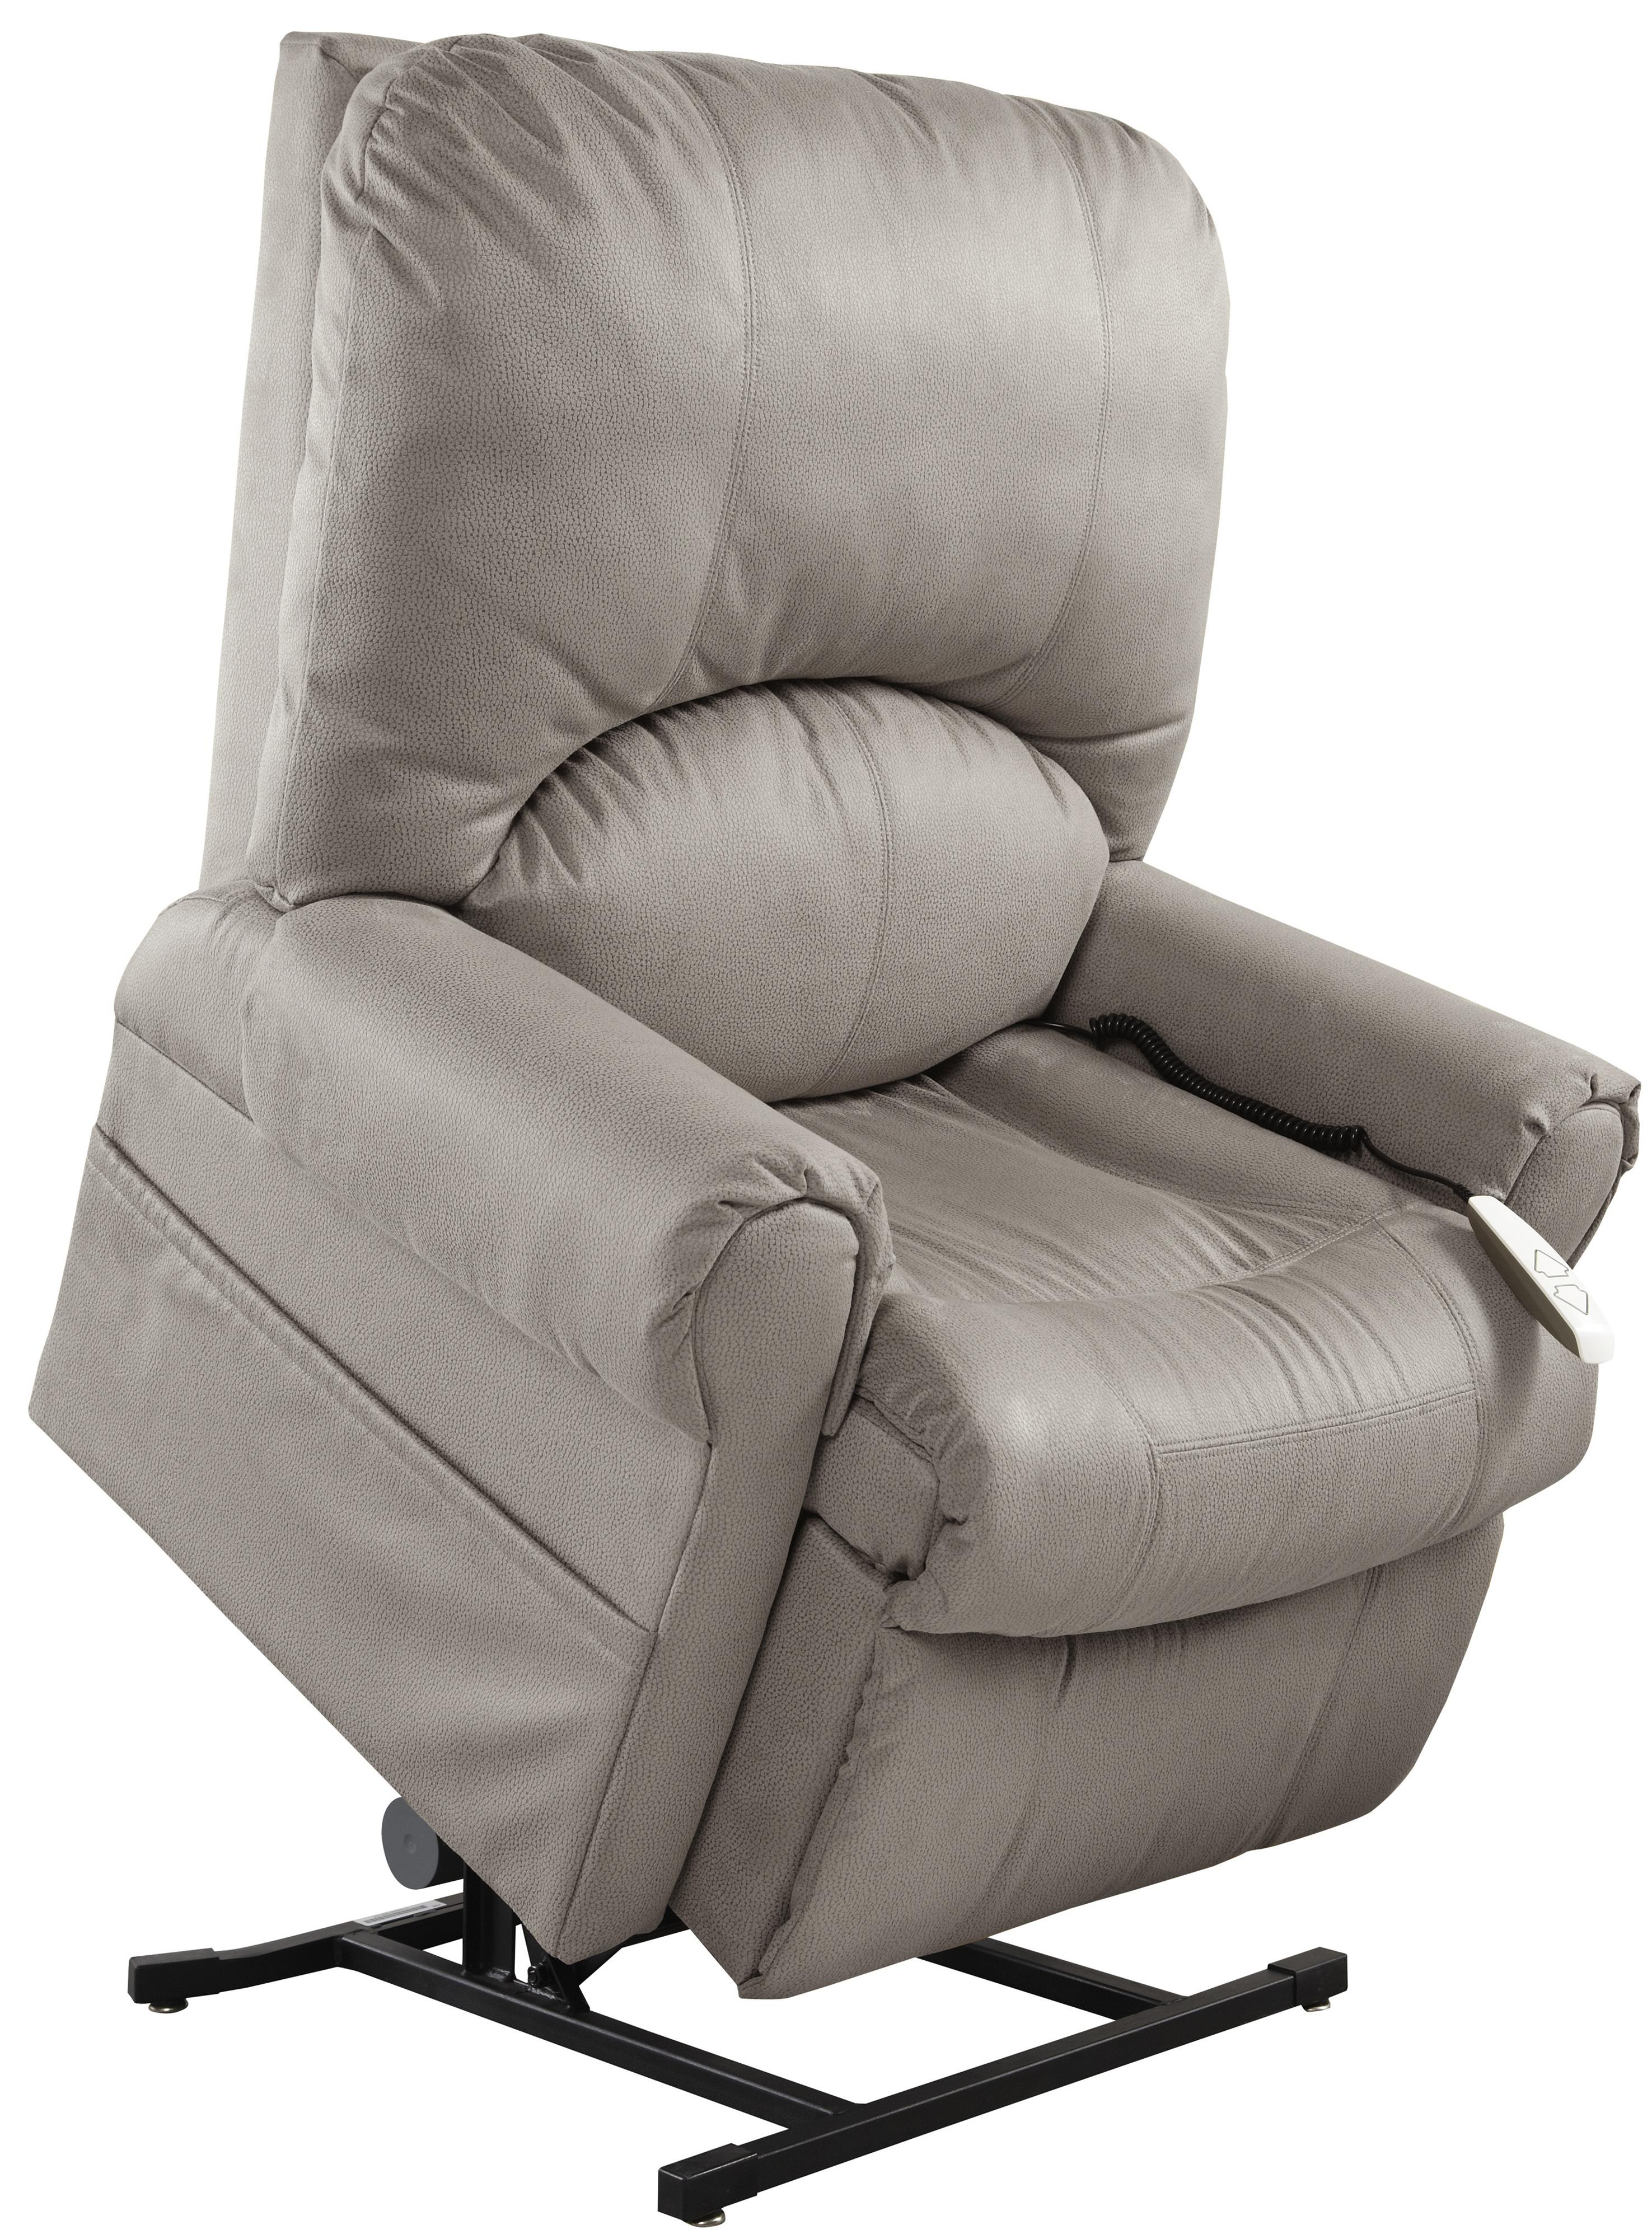 Mega Motion Lift Chairs 3-Position Reclining Lift Chair - Item Number: AS-6001 Stone